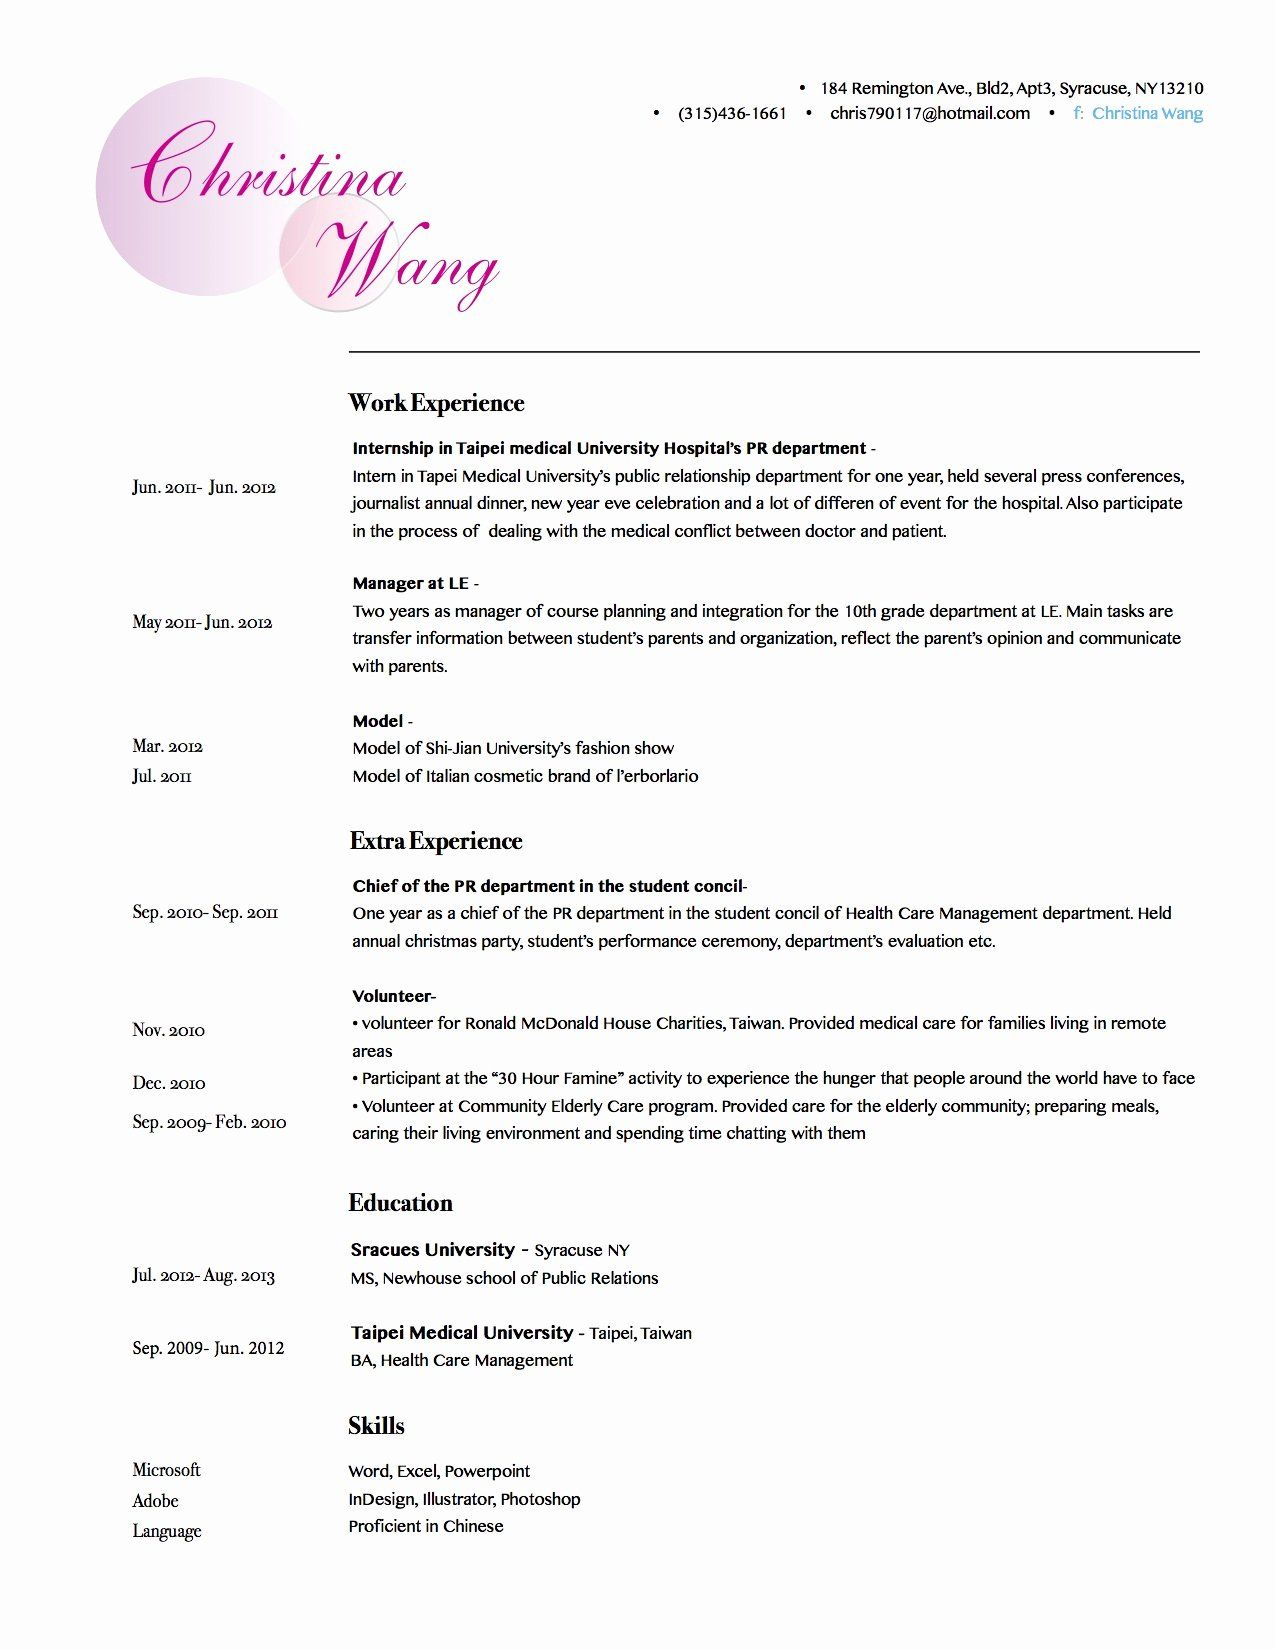 freelance makeup artist resume awesome listing salary requirements on keyword search Resume Makeup Artist Resume Freelance